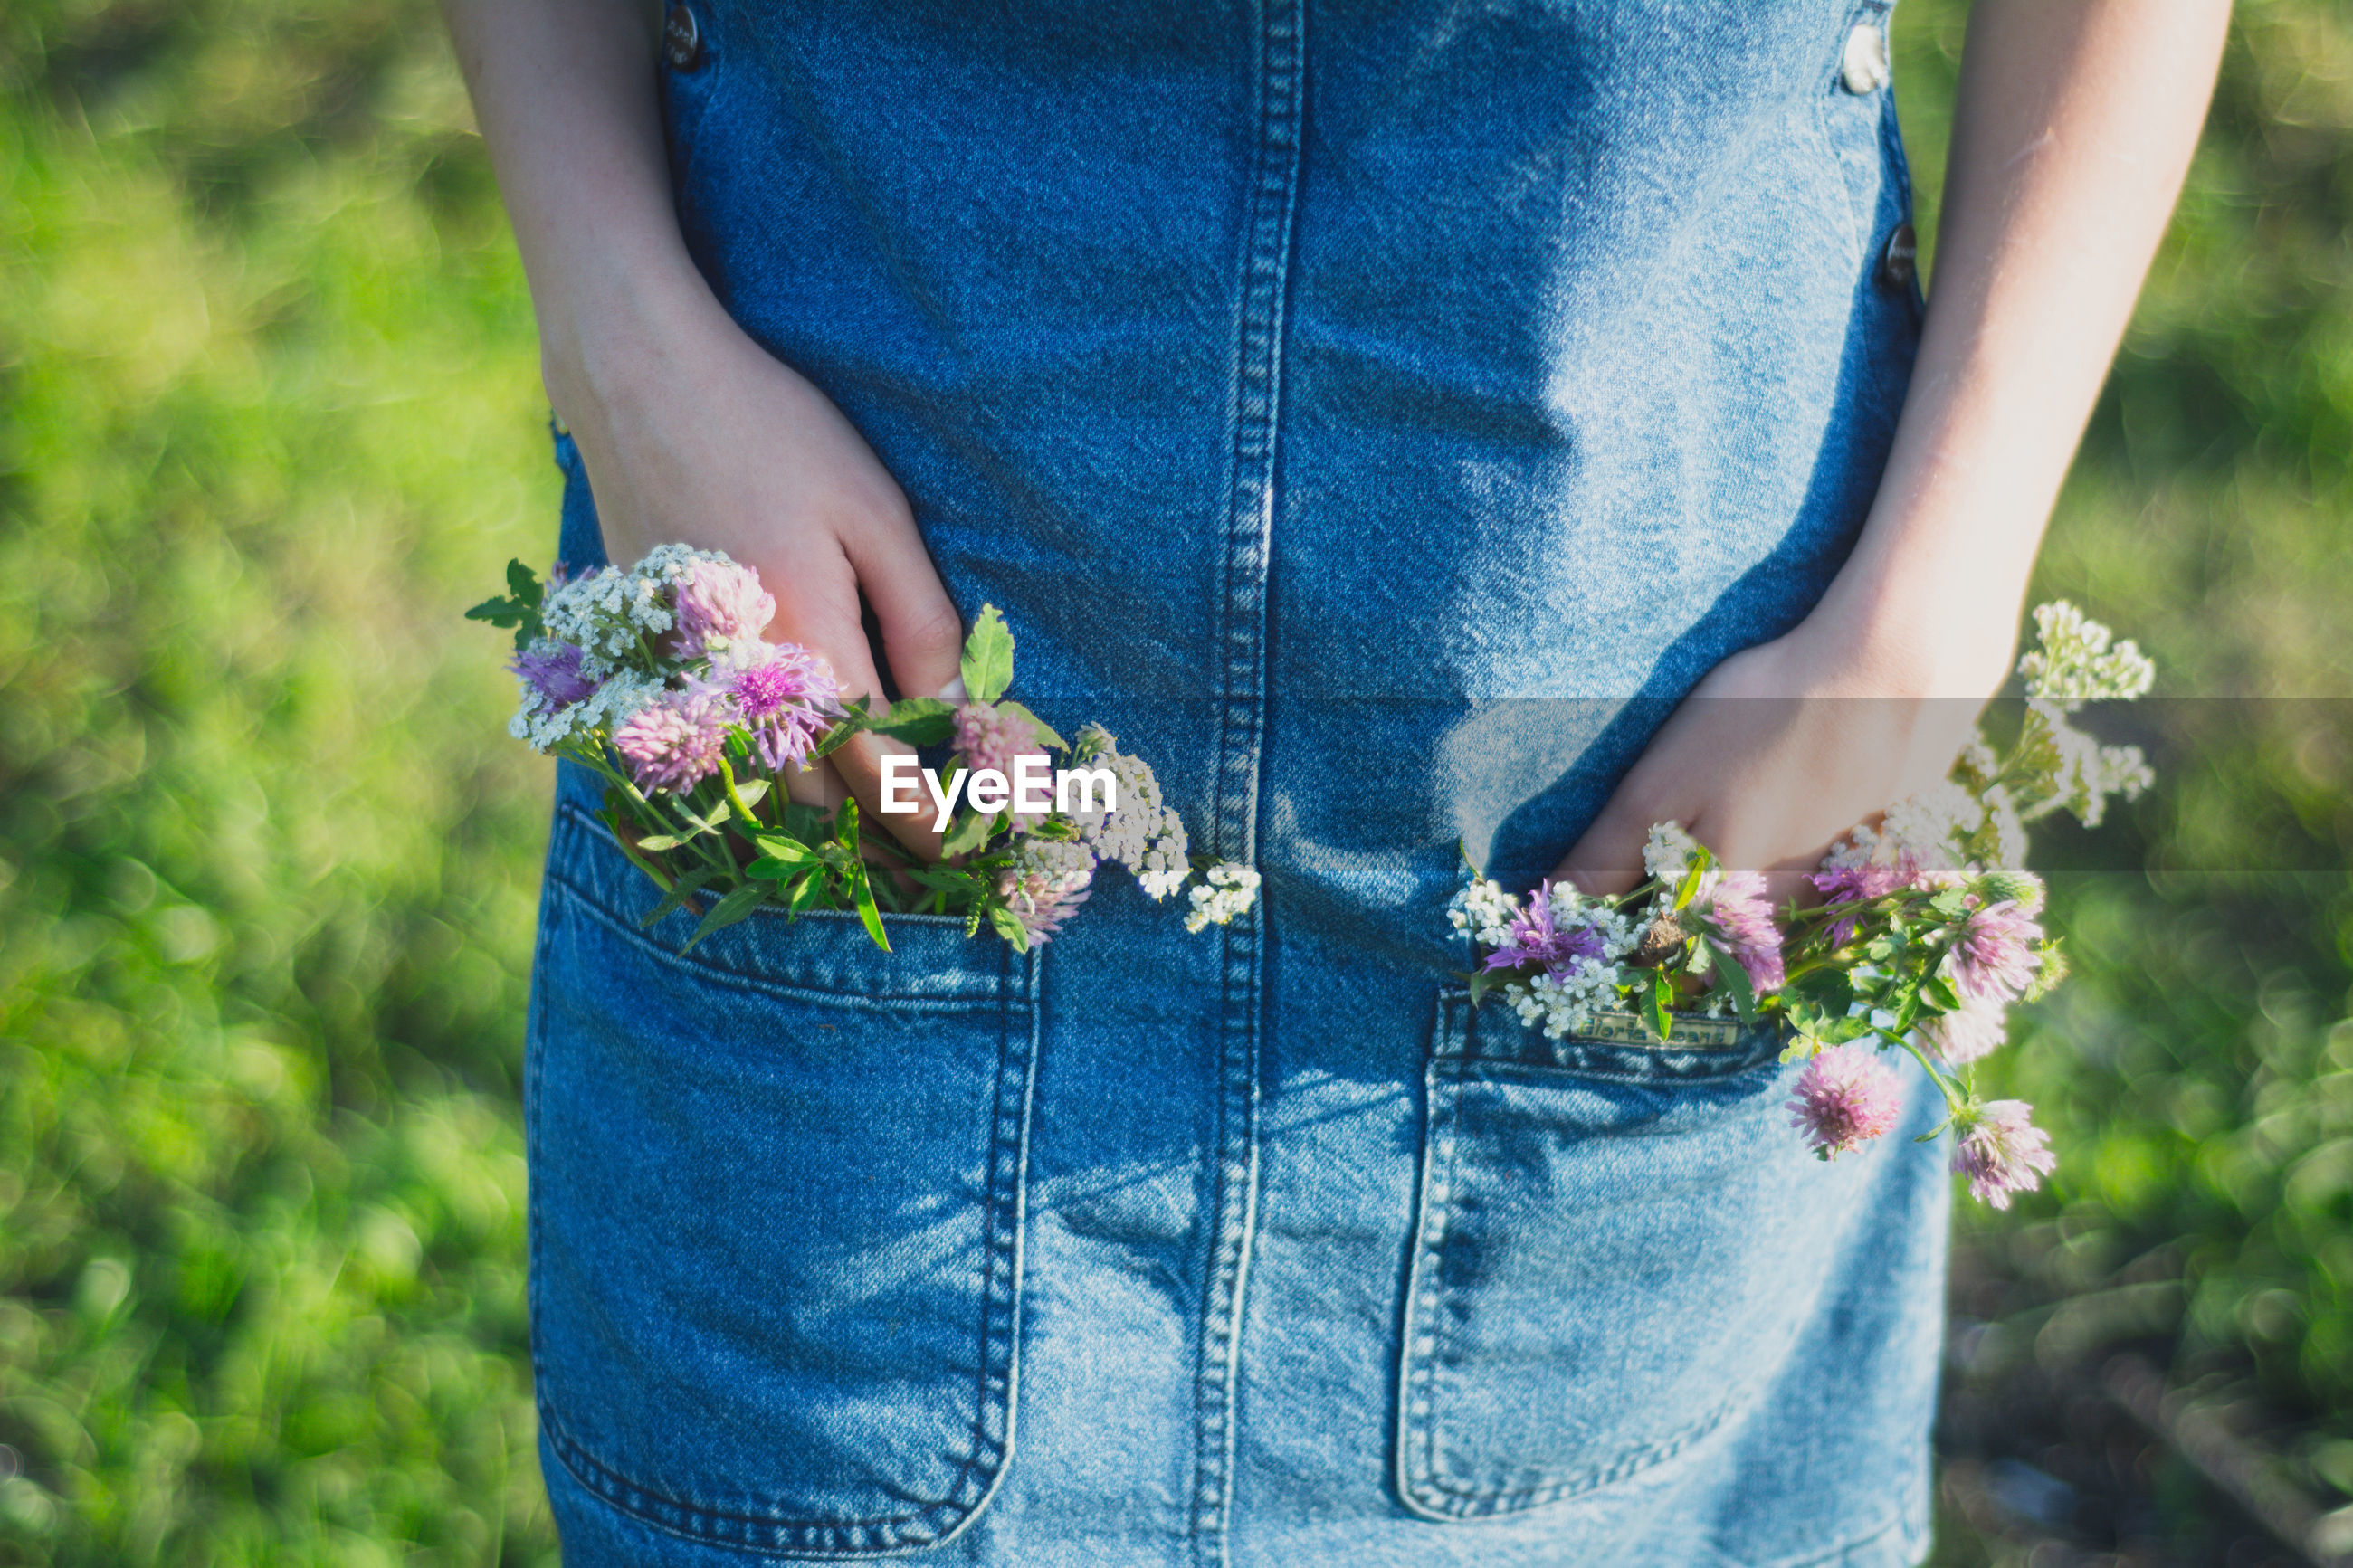 Midsection of woman with flowers in pockets